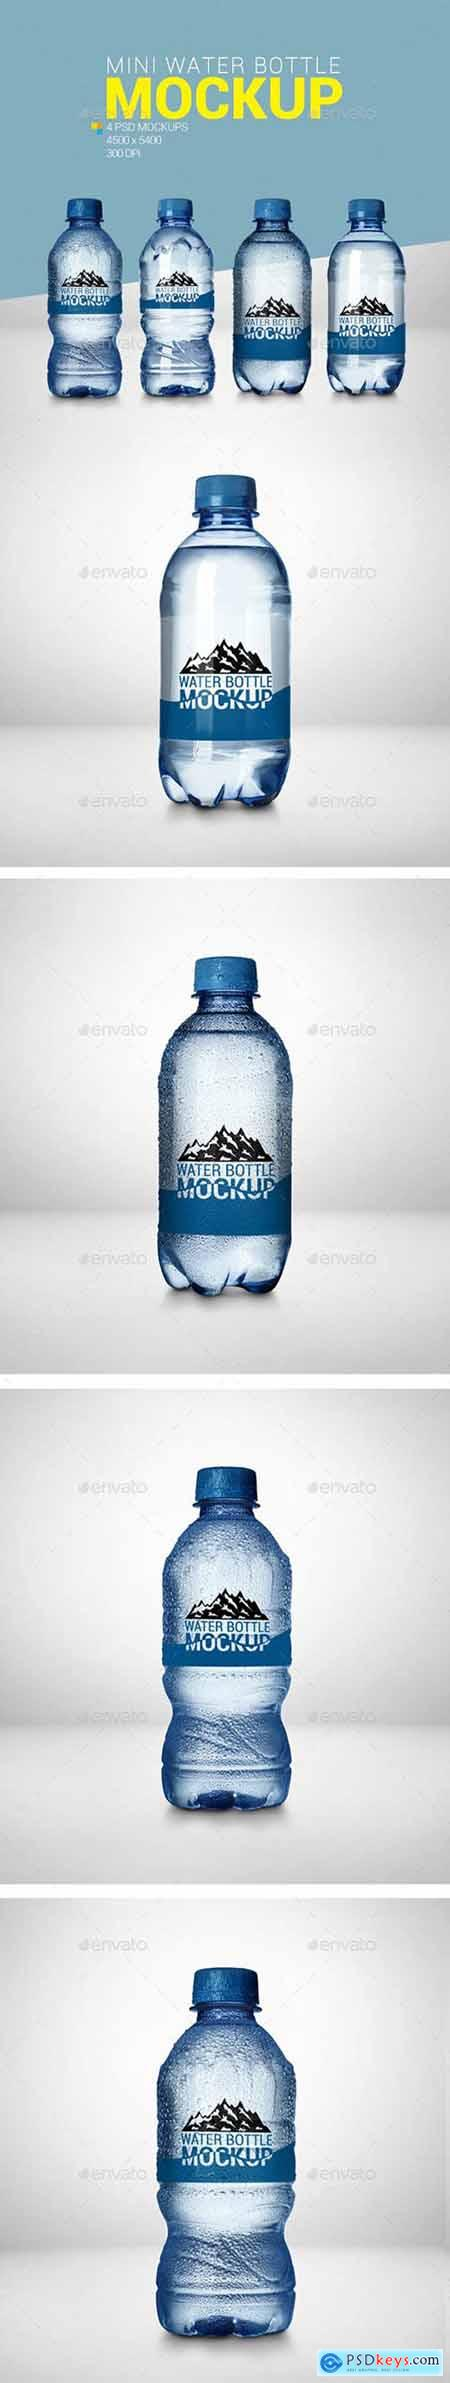 Graphicriver 4 Mini Water Bottle Mockup